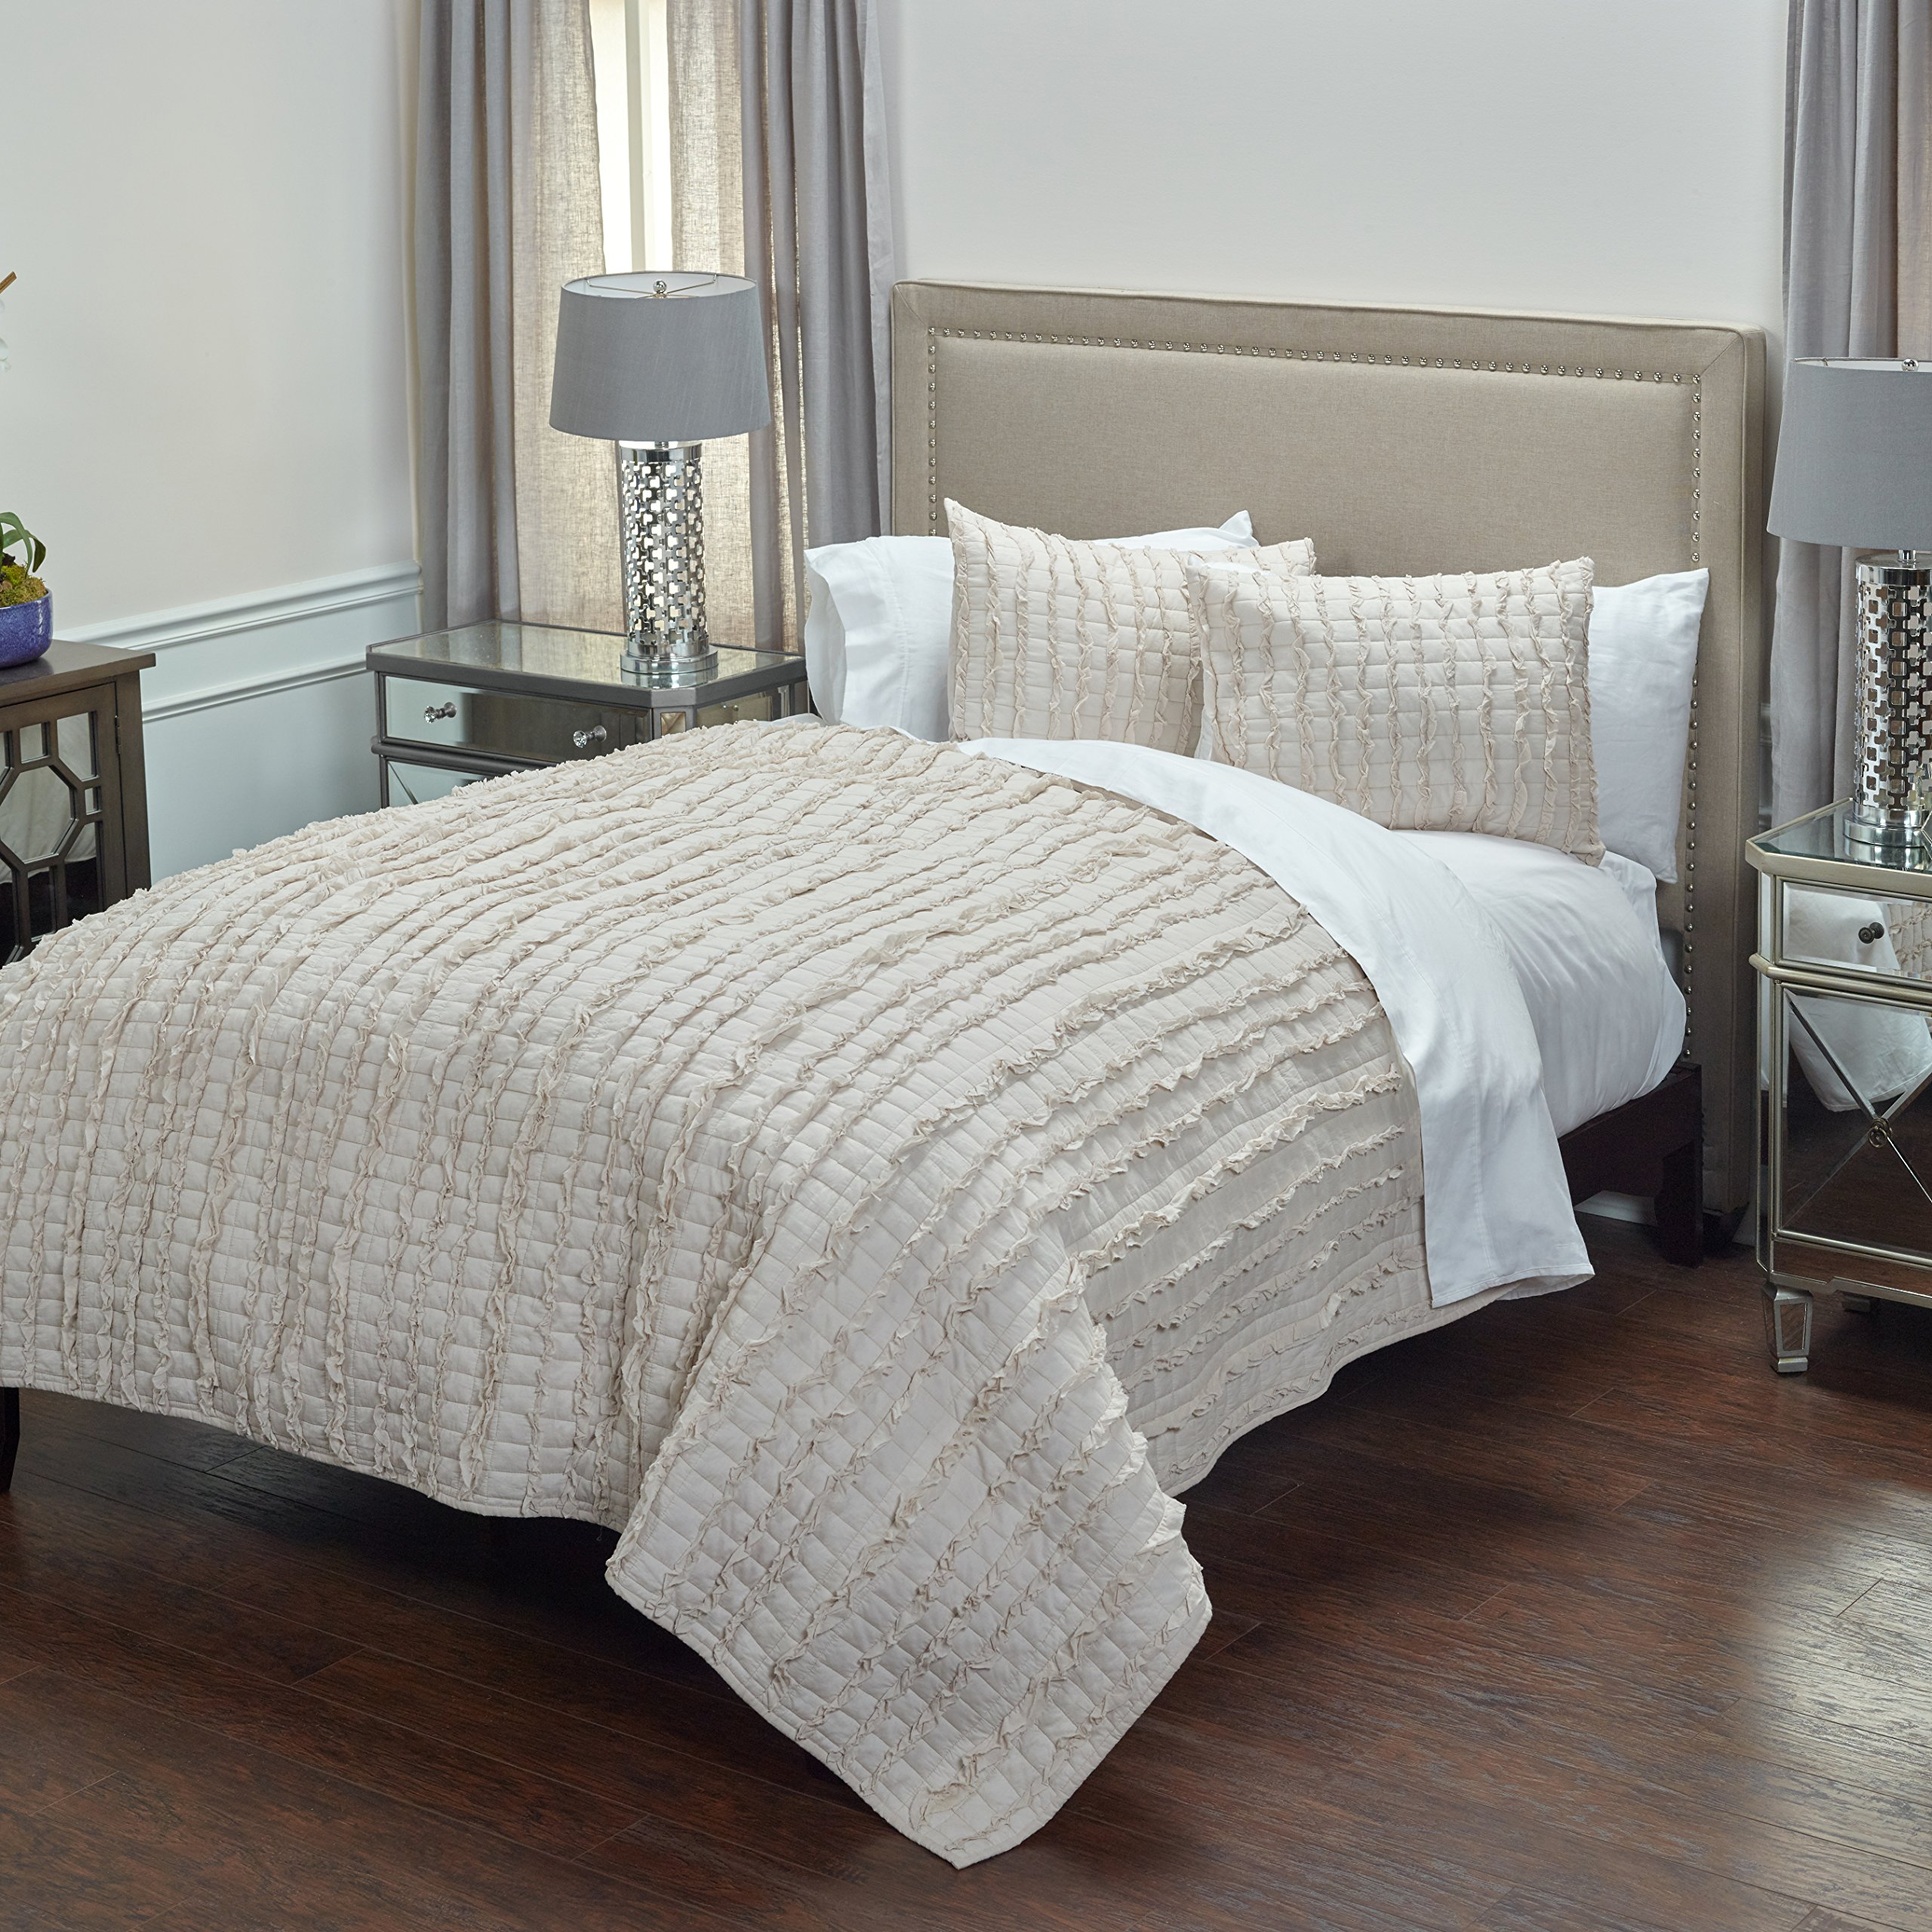 Rizzy Home QLTBT3015TA009092 Quilt, Taupe, Queen